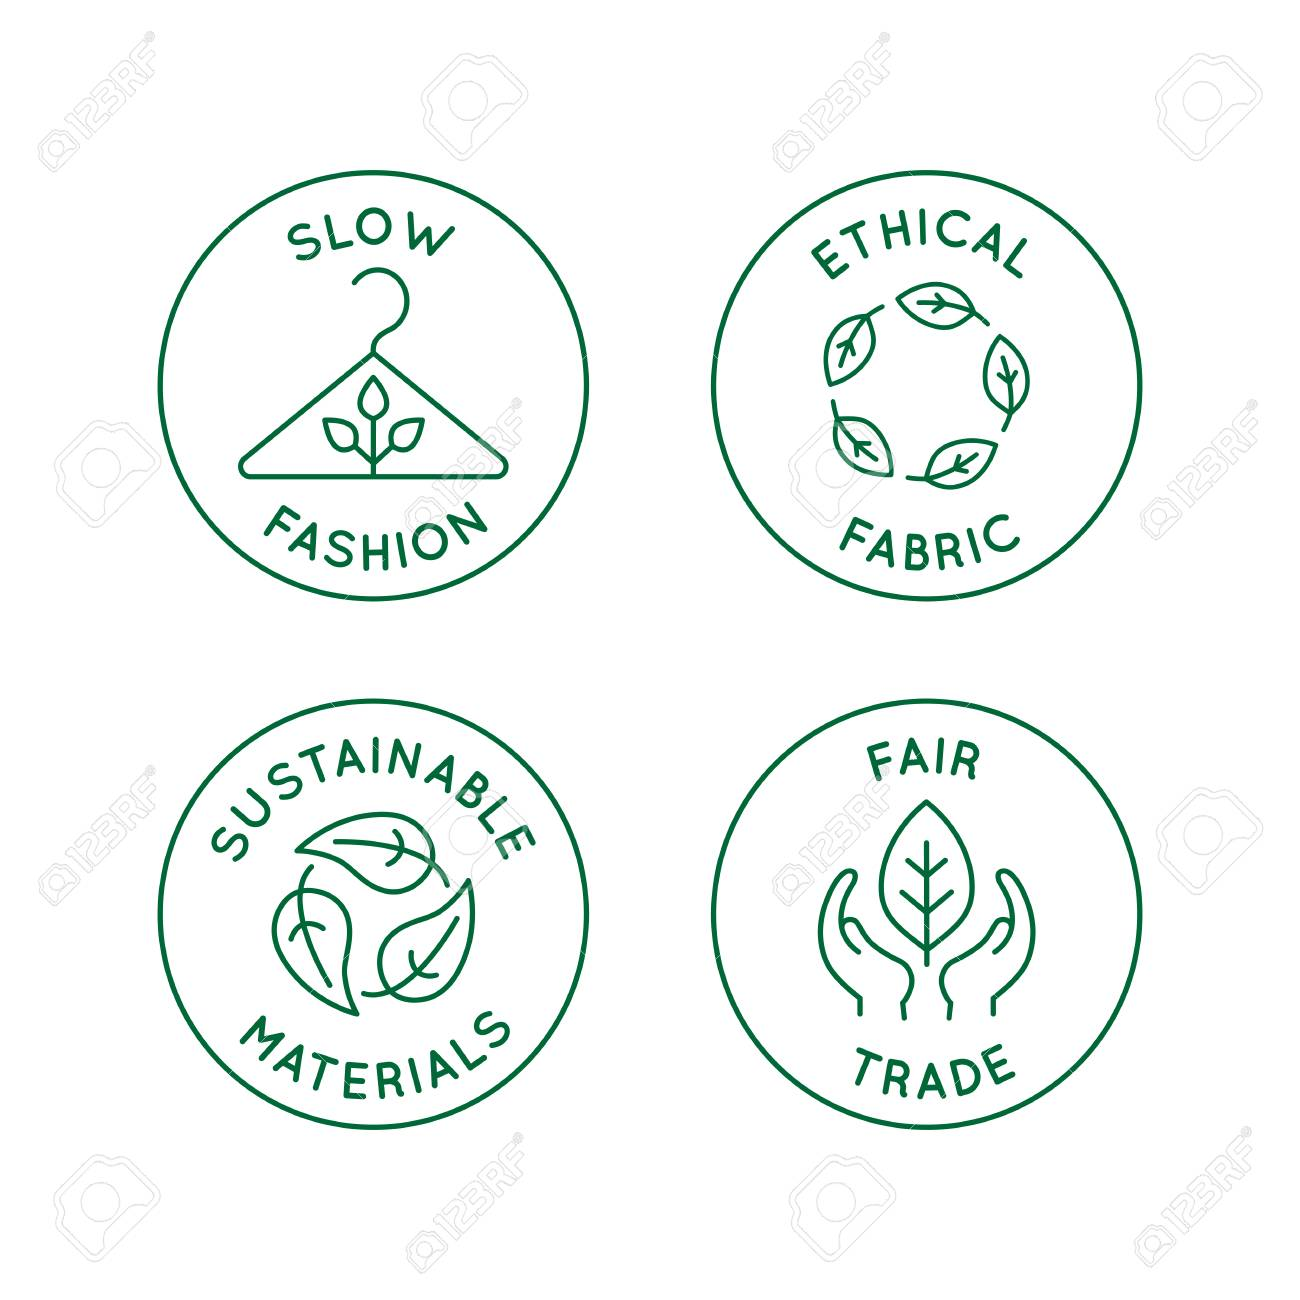 Vector set of linear icons and badges related to slow fashion - ethical fabric, sustainable materials, fair trade - eco-friendly manufacturing and organic certified producing of garment and apparel - 112689932